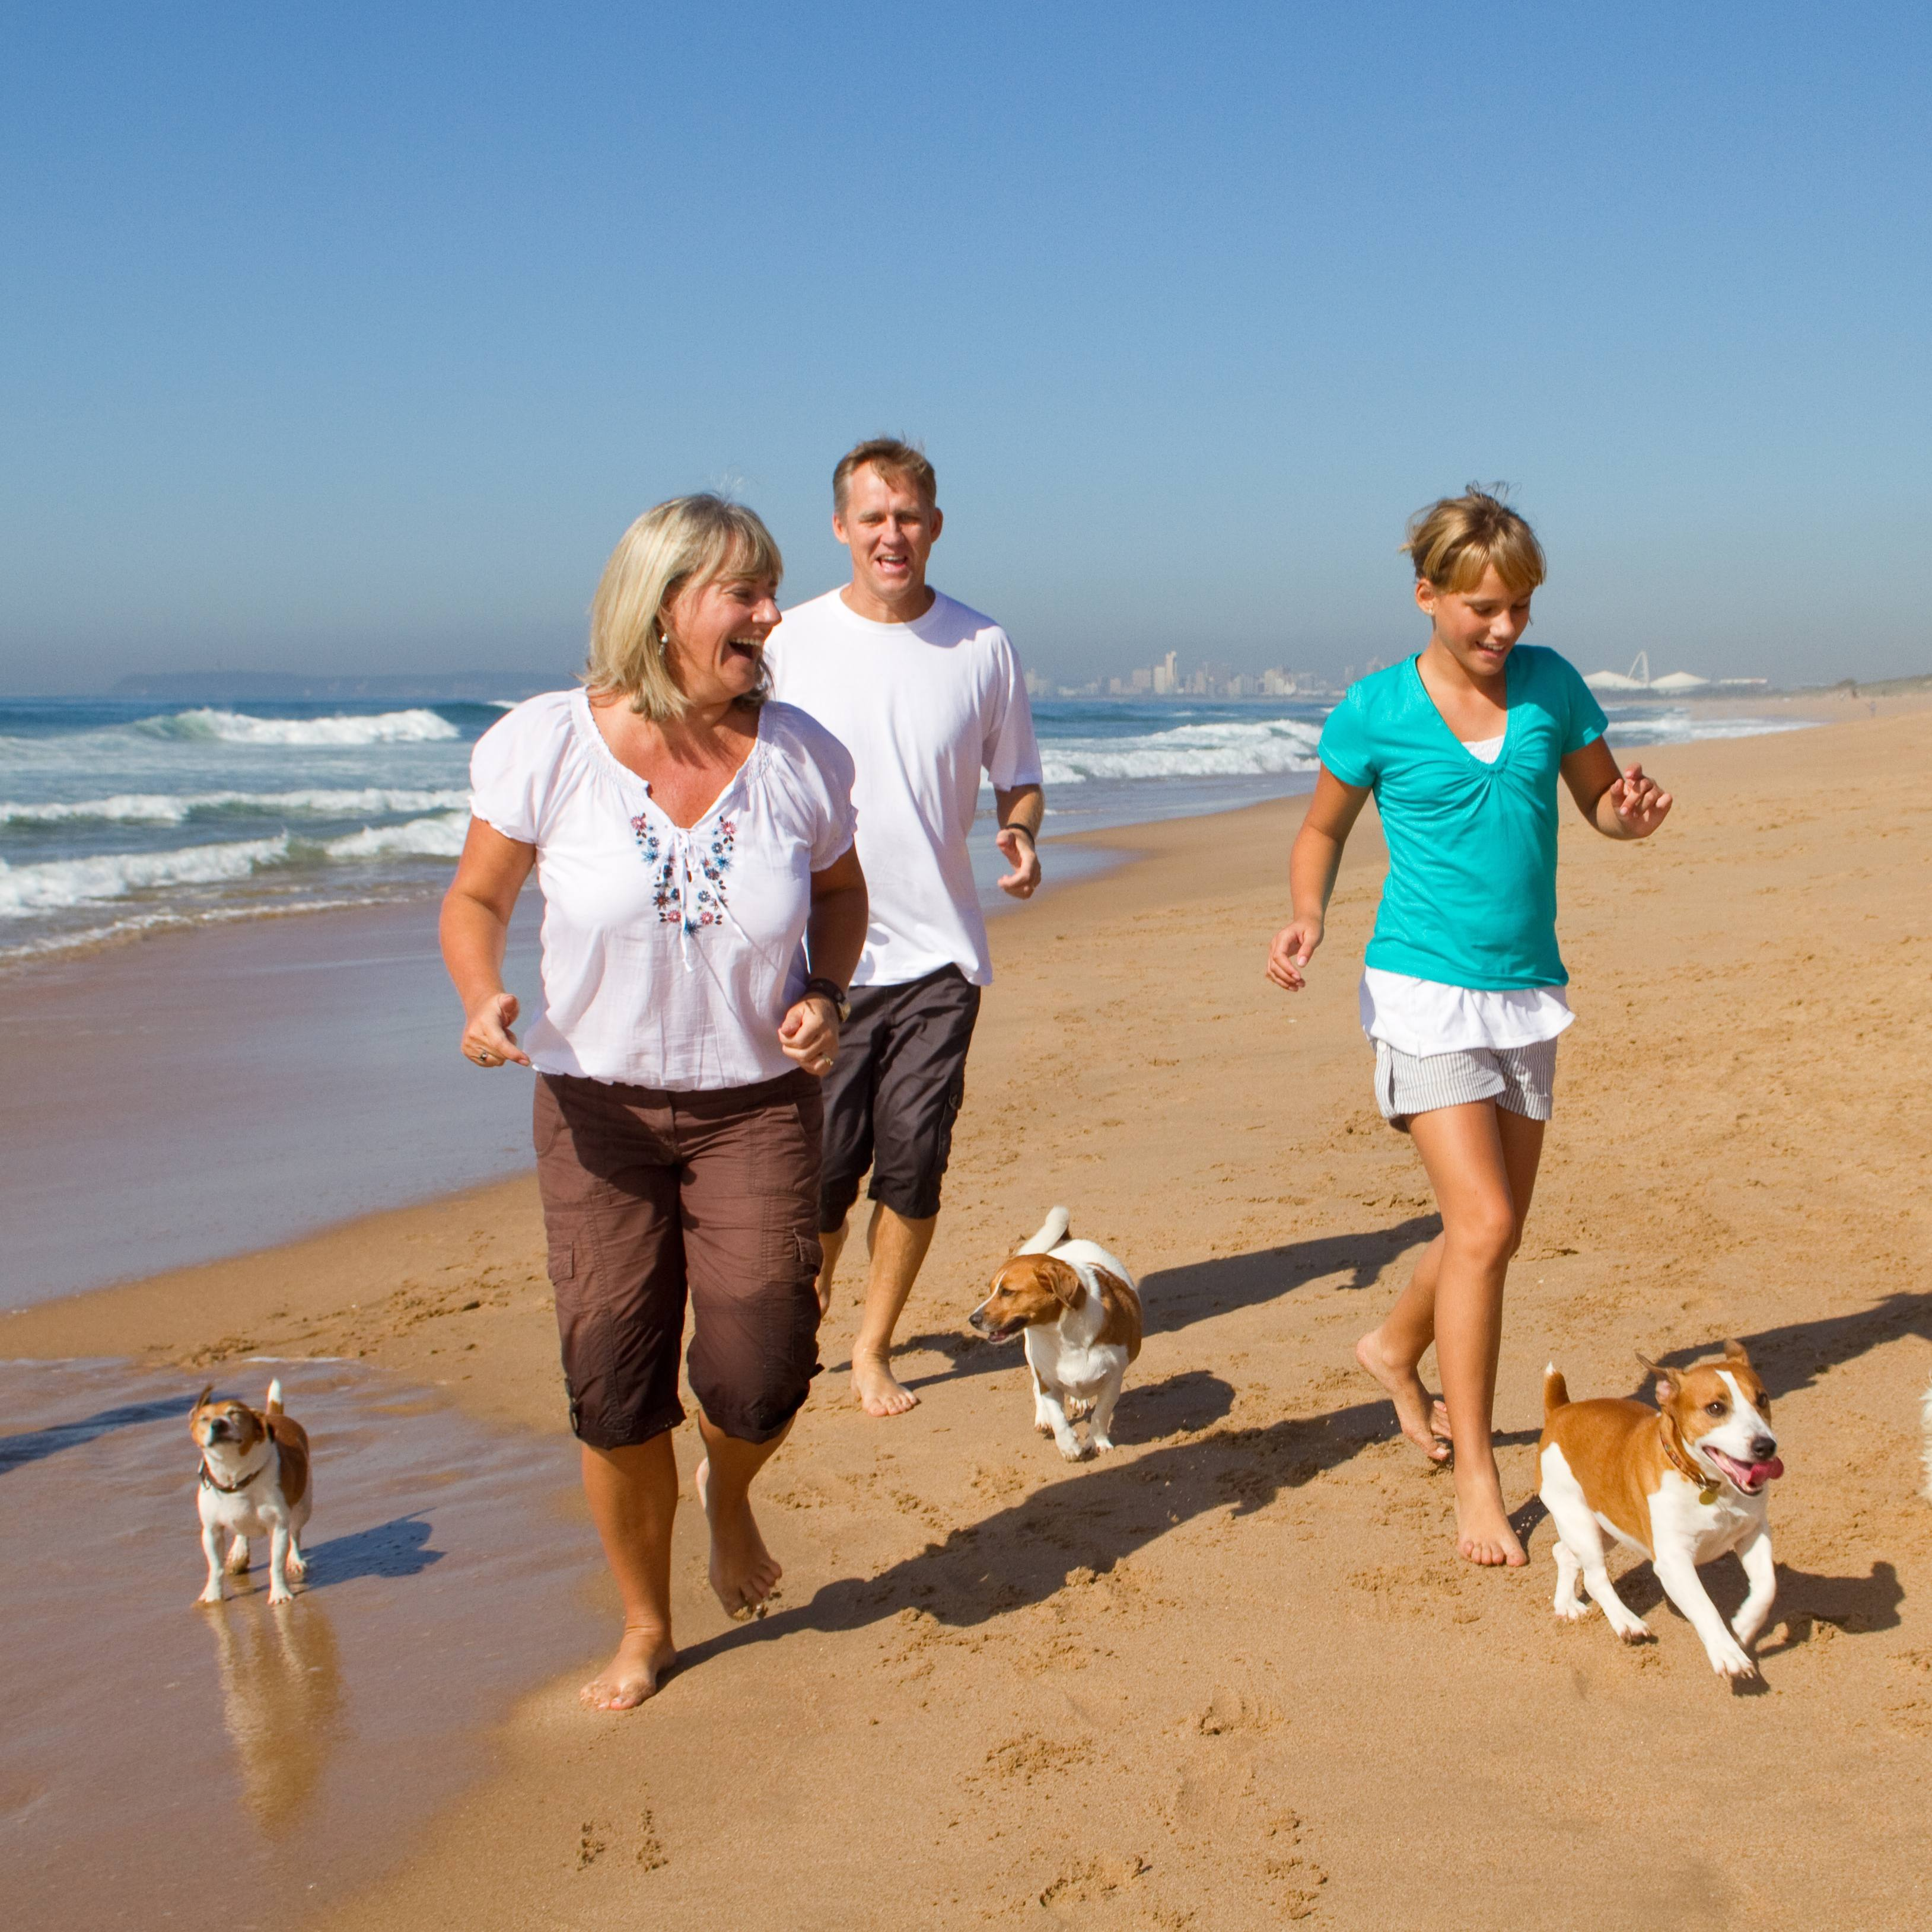 a group of Caucasian people, perhaps a family, walking on the beach in the sunshine with their dogs